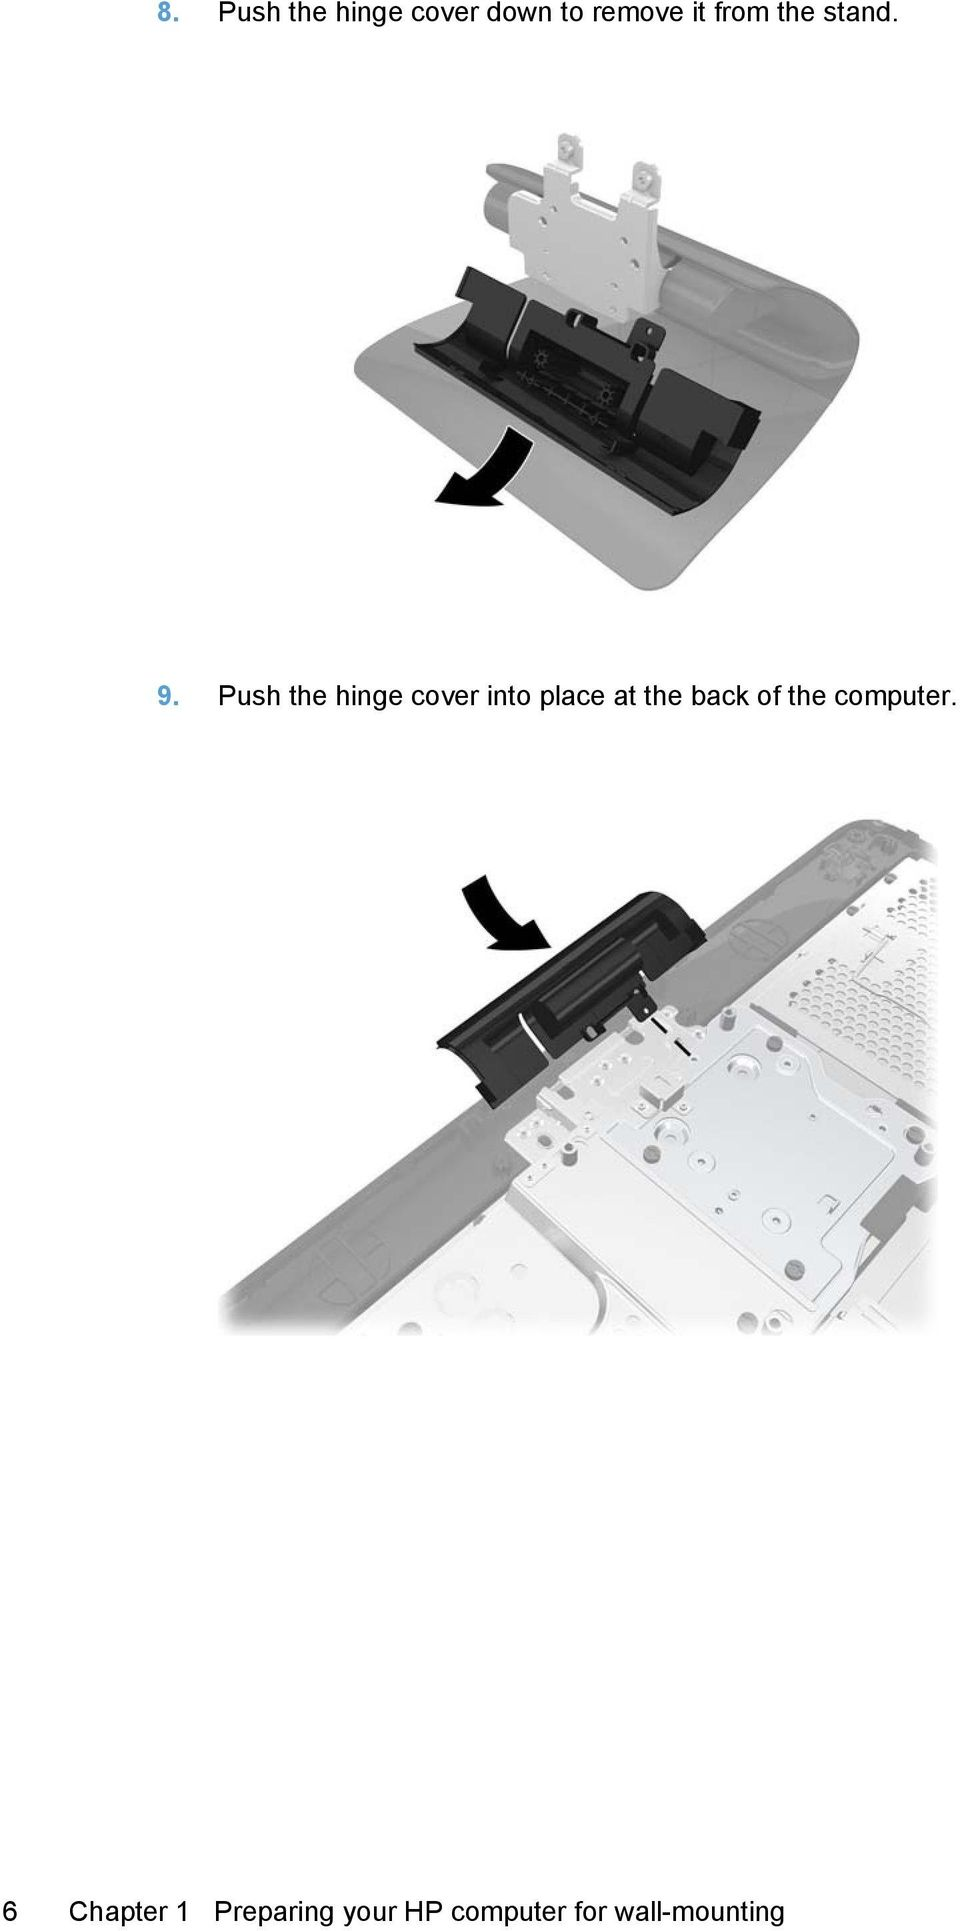 Push the hinge cover into place at the back